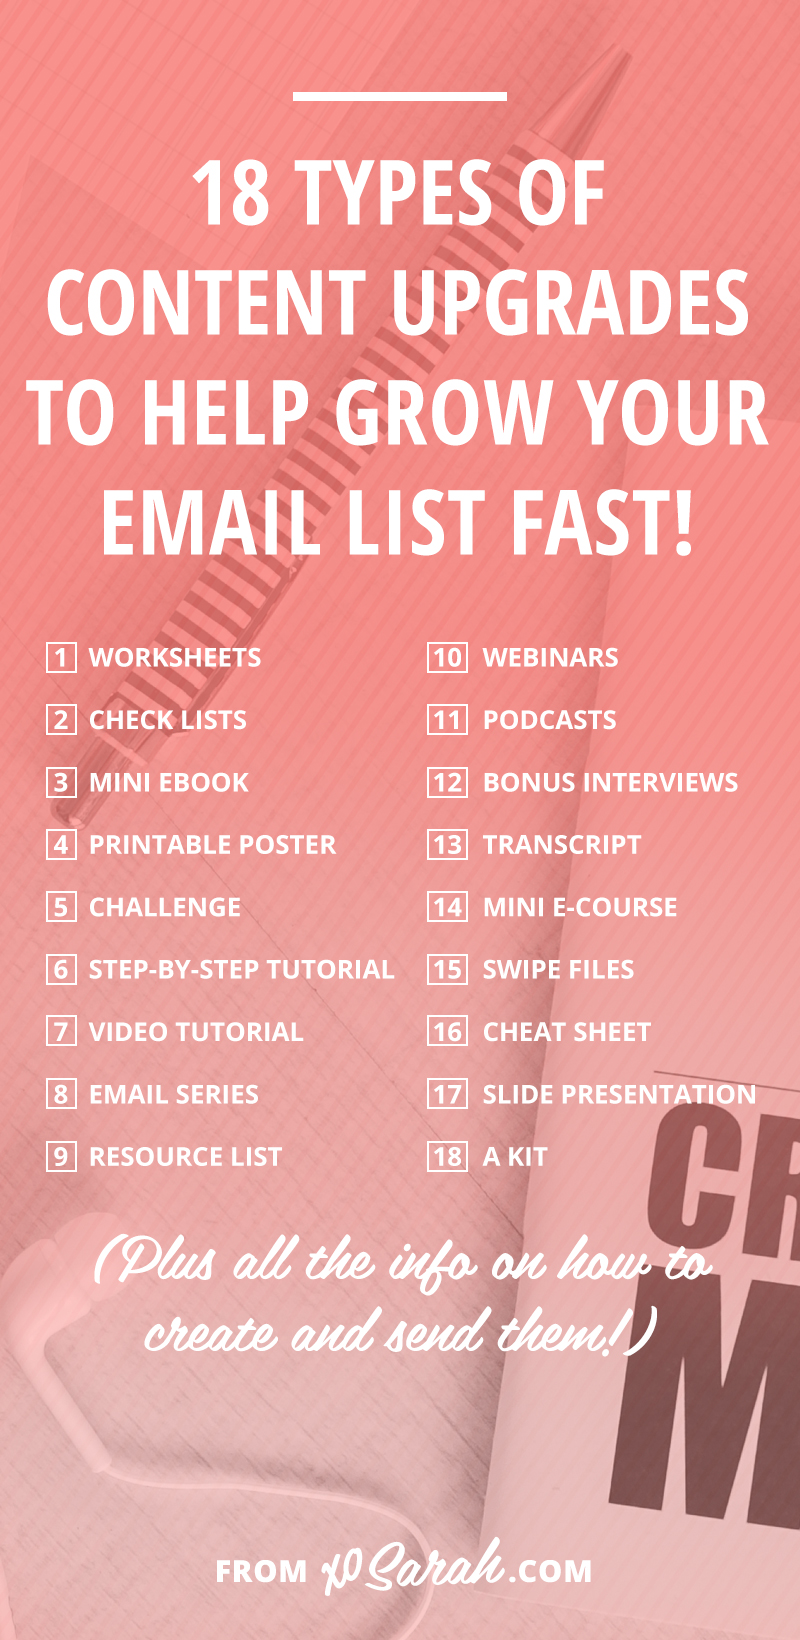 Content upgrades are THE best way to provide your audience with a massive amount of value and build your email list at the same time. And it's THE biggest way I've been able to grow my own list on a daily basis. While I'm sure you're convinced it will cause a spike in subscriber numbers and sales, actually coming up with content upgrades on a regular basis might prove to be challenging. So today I've got EIGHTEEN ideas for how you can add value to your blog posts and boost that email list every single day!